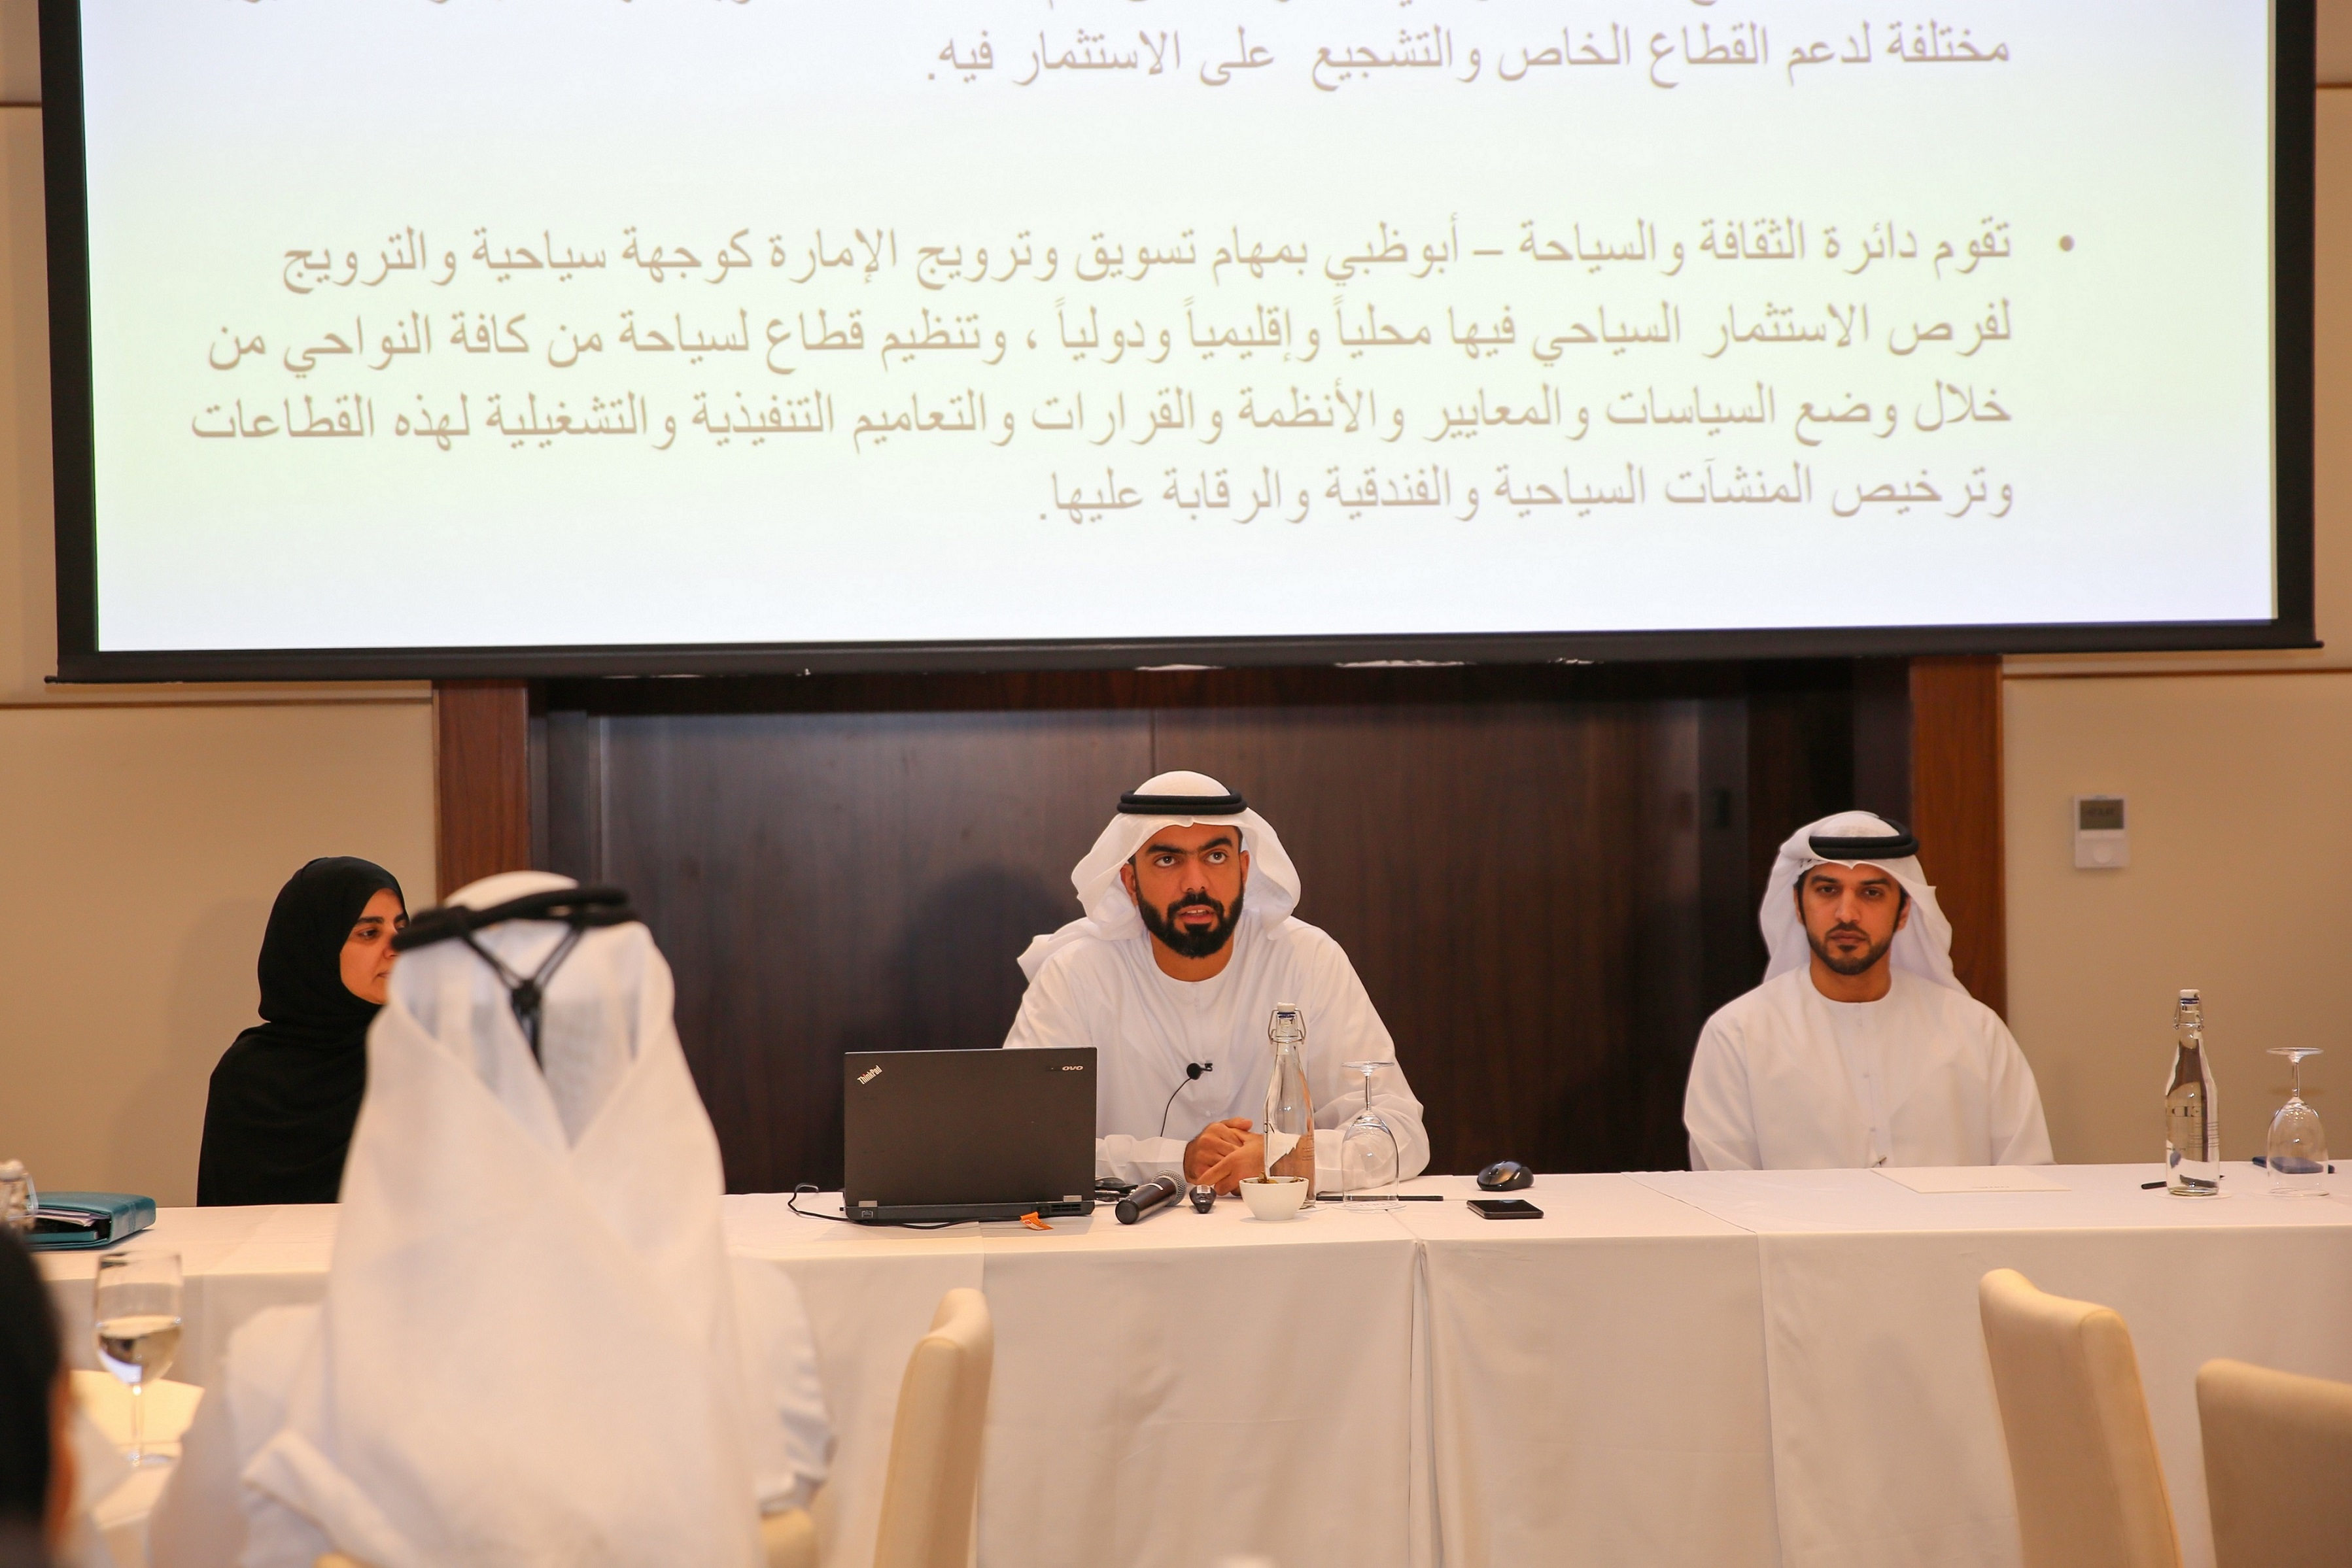 dct abu dhabi announces initiatives to drive tourism, sector investment 1